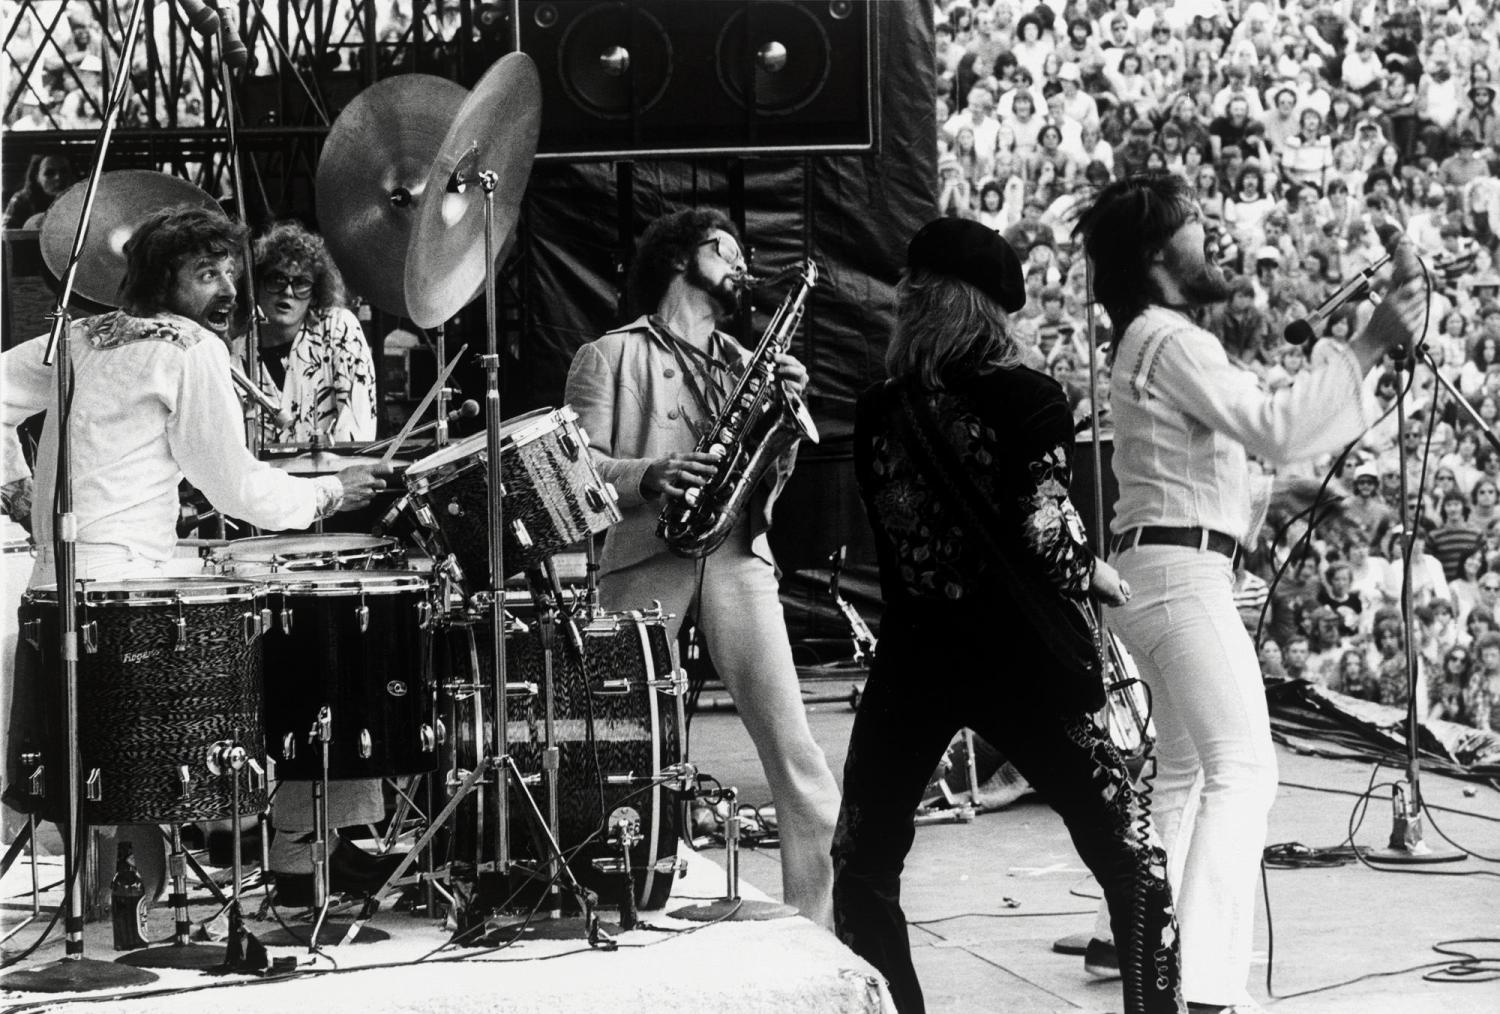 Bob Seeger & the Silver Bullet Band performing at Folsom Field in 1977